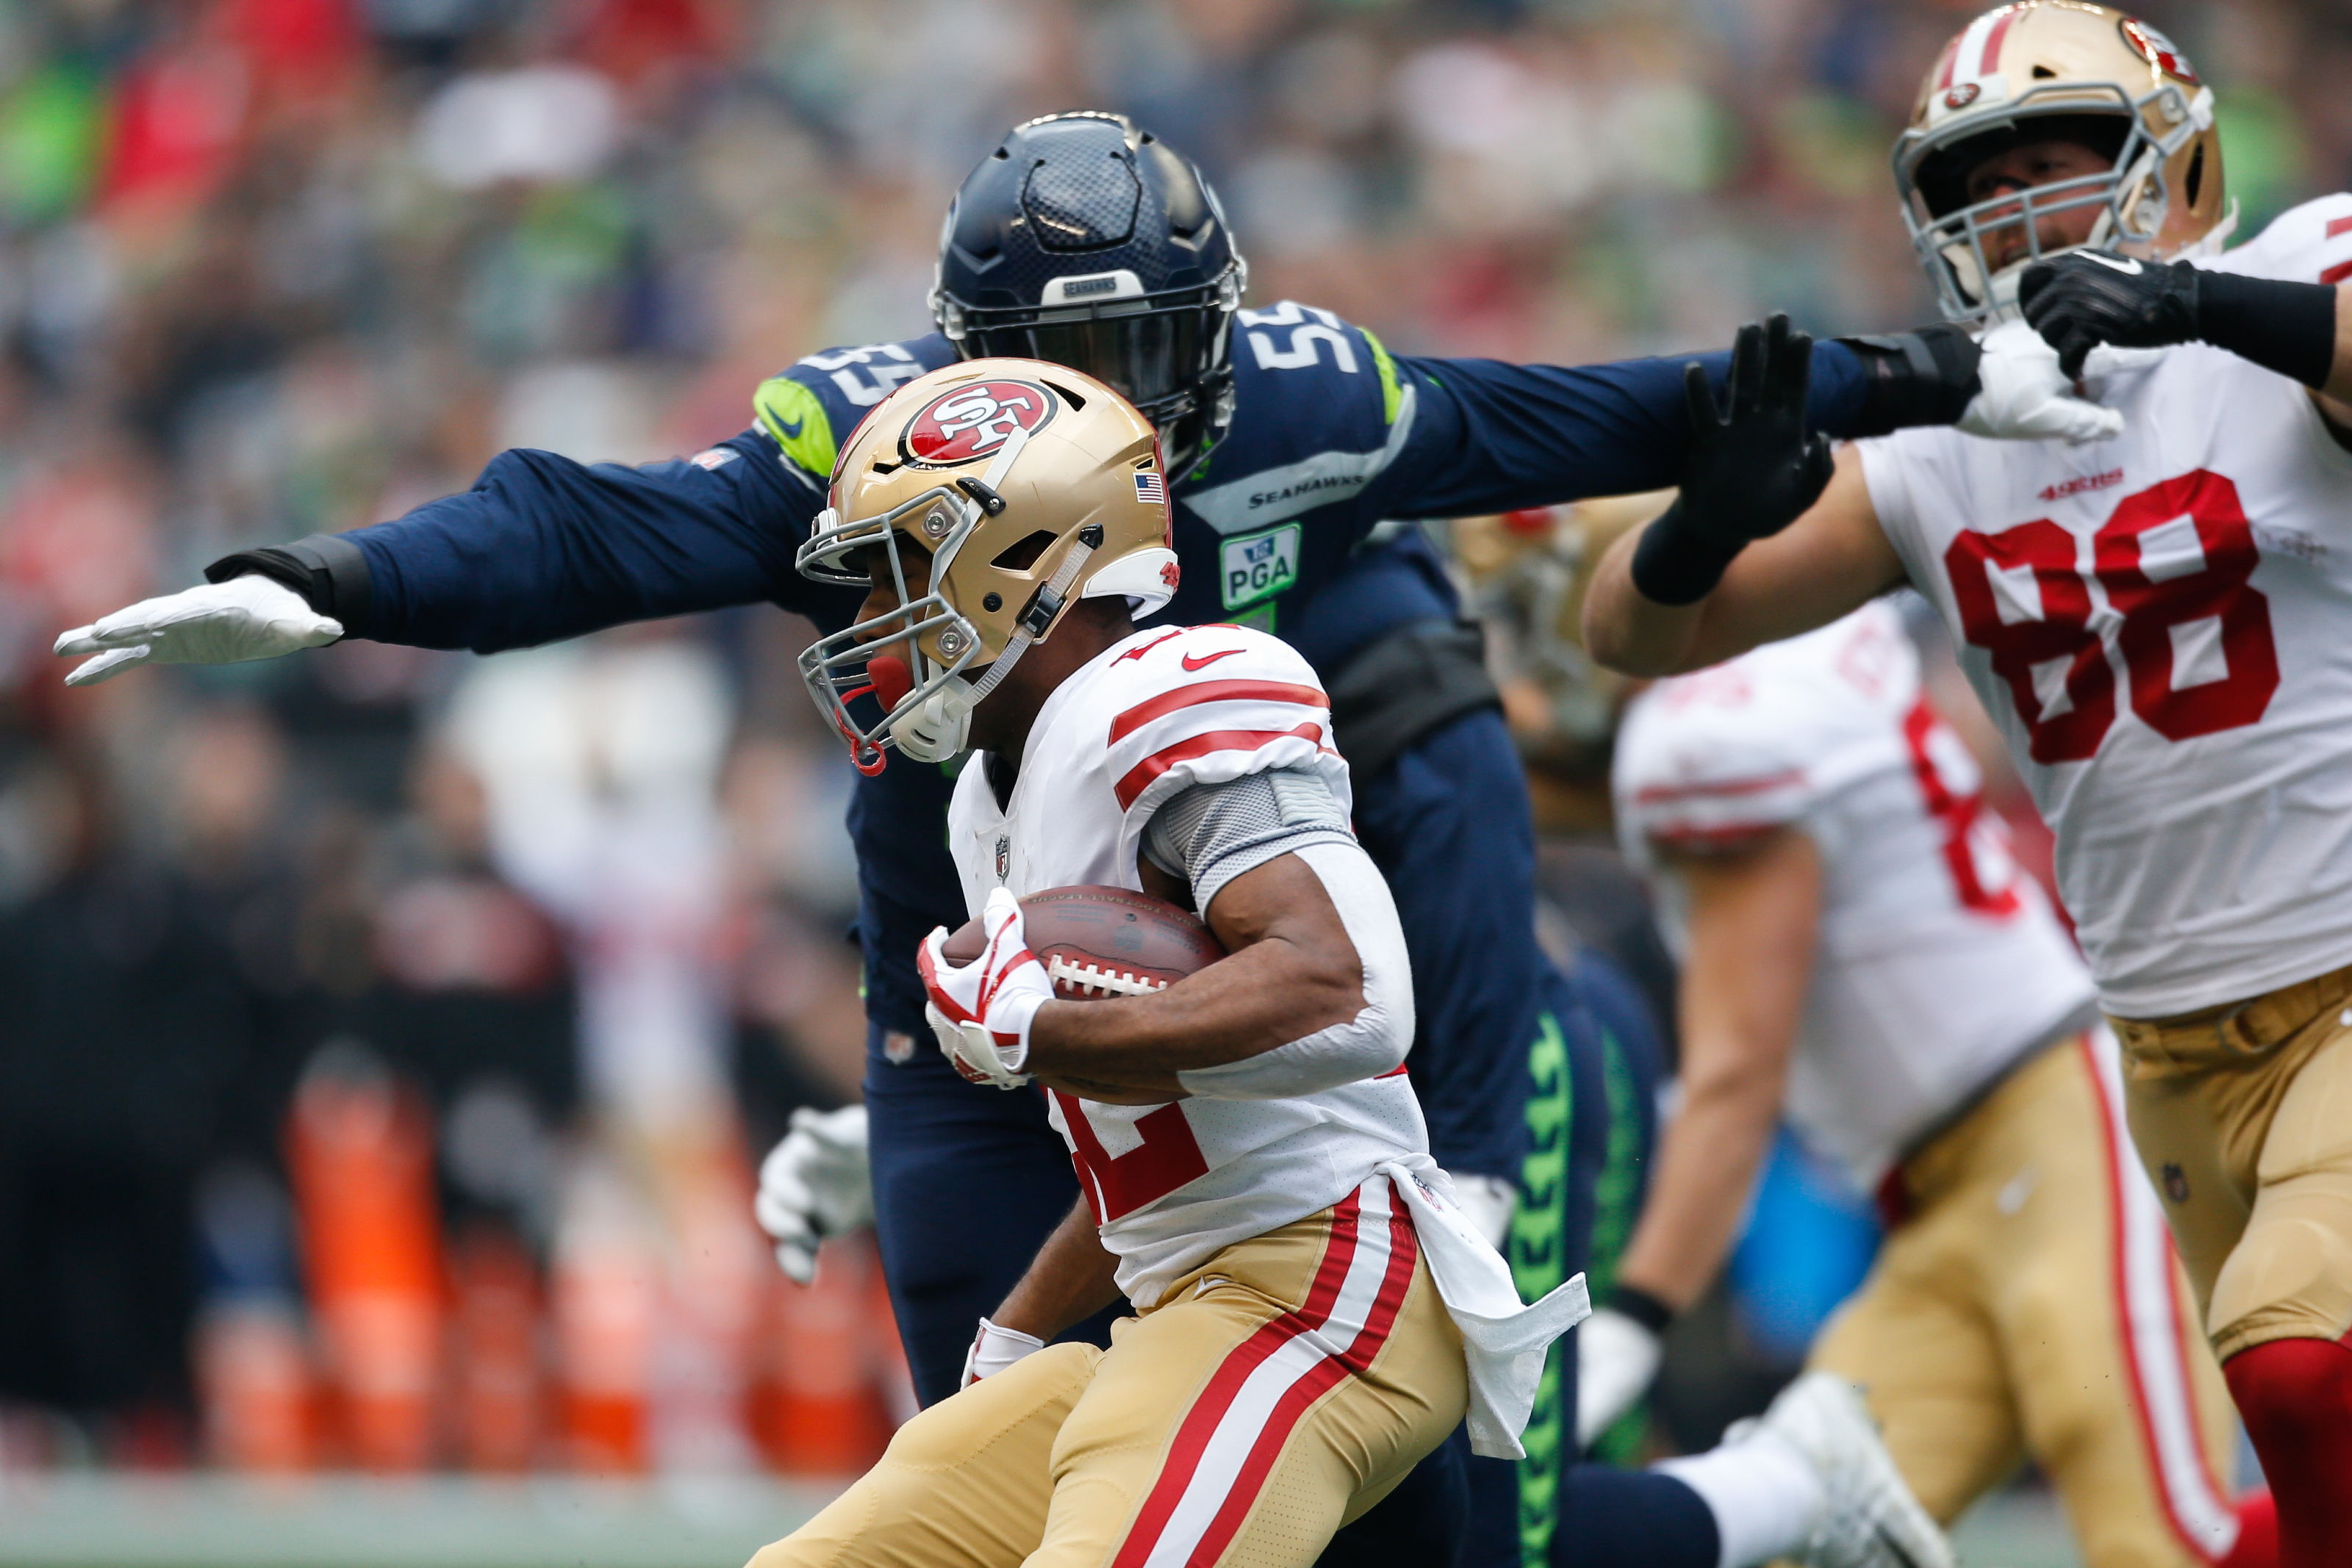 Betting odds 49ers seahawks how to turn paypal money into bitcoins definition